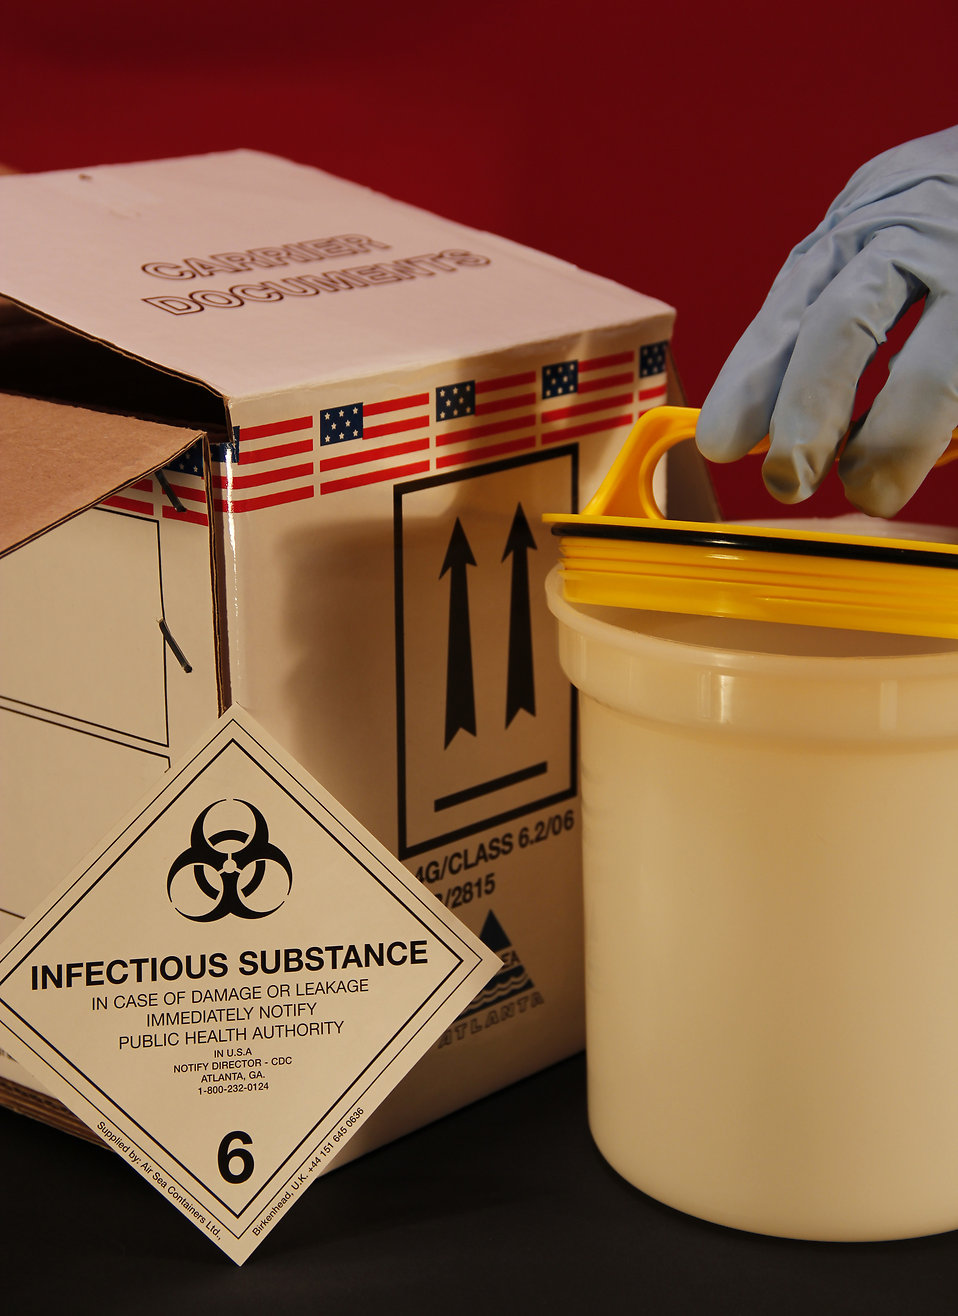 A gloved hand opening a biohazard container : Free Stock Photo